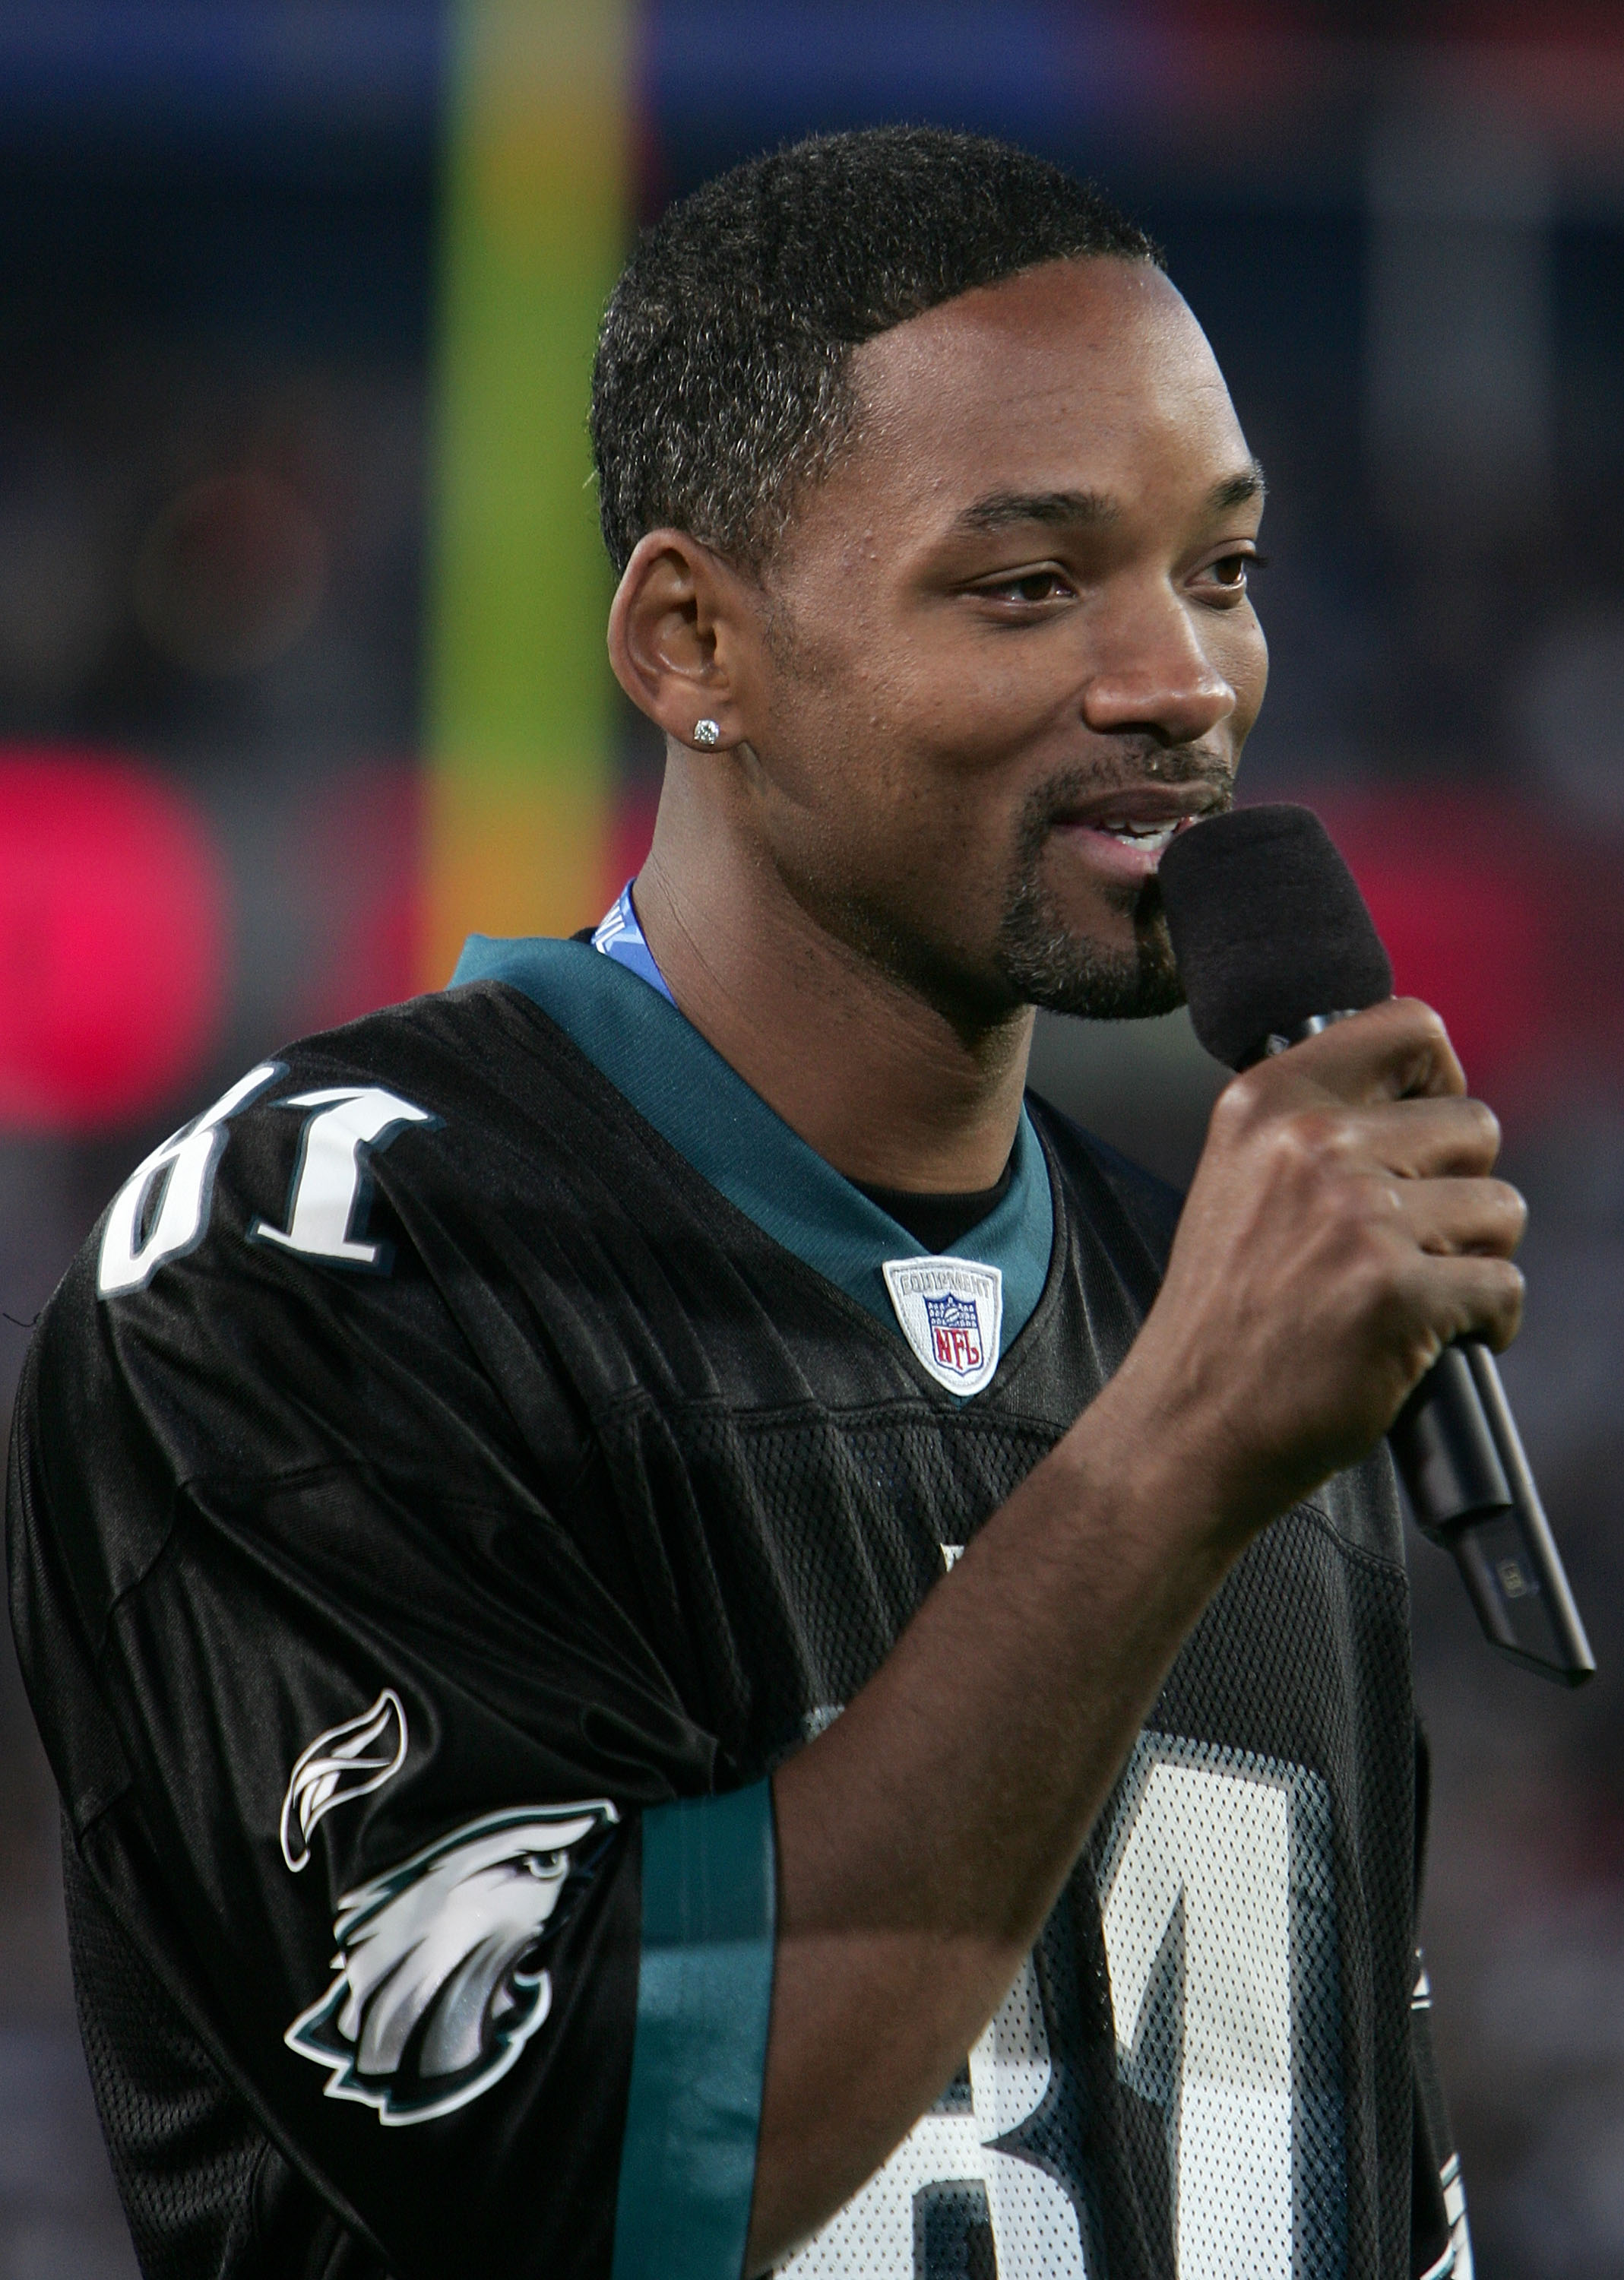 JACKSONVILLE, FLORIDA - FEBRUARY 06:  Actor Will Smith introduces Alcia Keys on the field before the start of Super Bowl XXXIX between the New England Patriots and the Philadelphia Eagles at Alltel Stadium on February 6, 2005 in Jacksonville, Florida.  (P